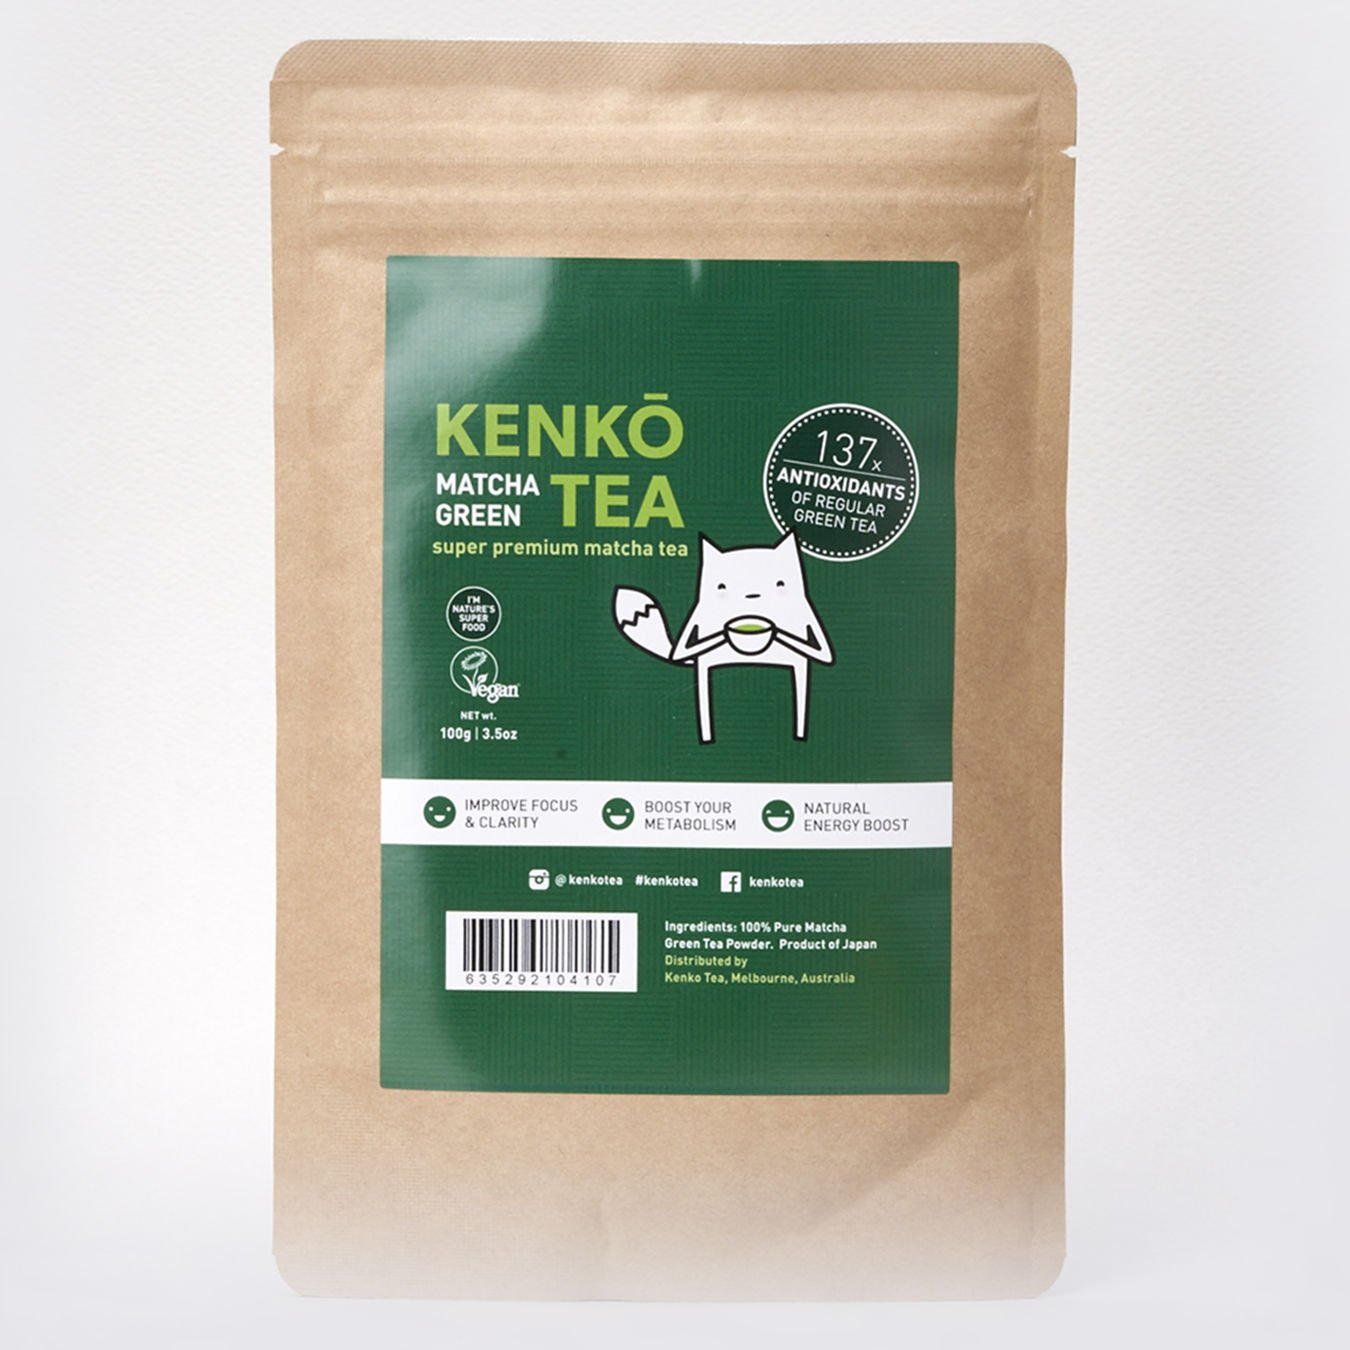 Matcha Green Tea Powder - Premium Japanese by Kenko Tea (Ceremonial Grade 100g)